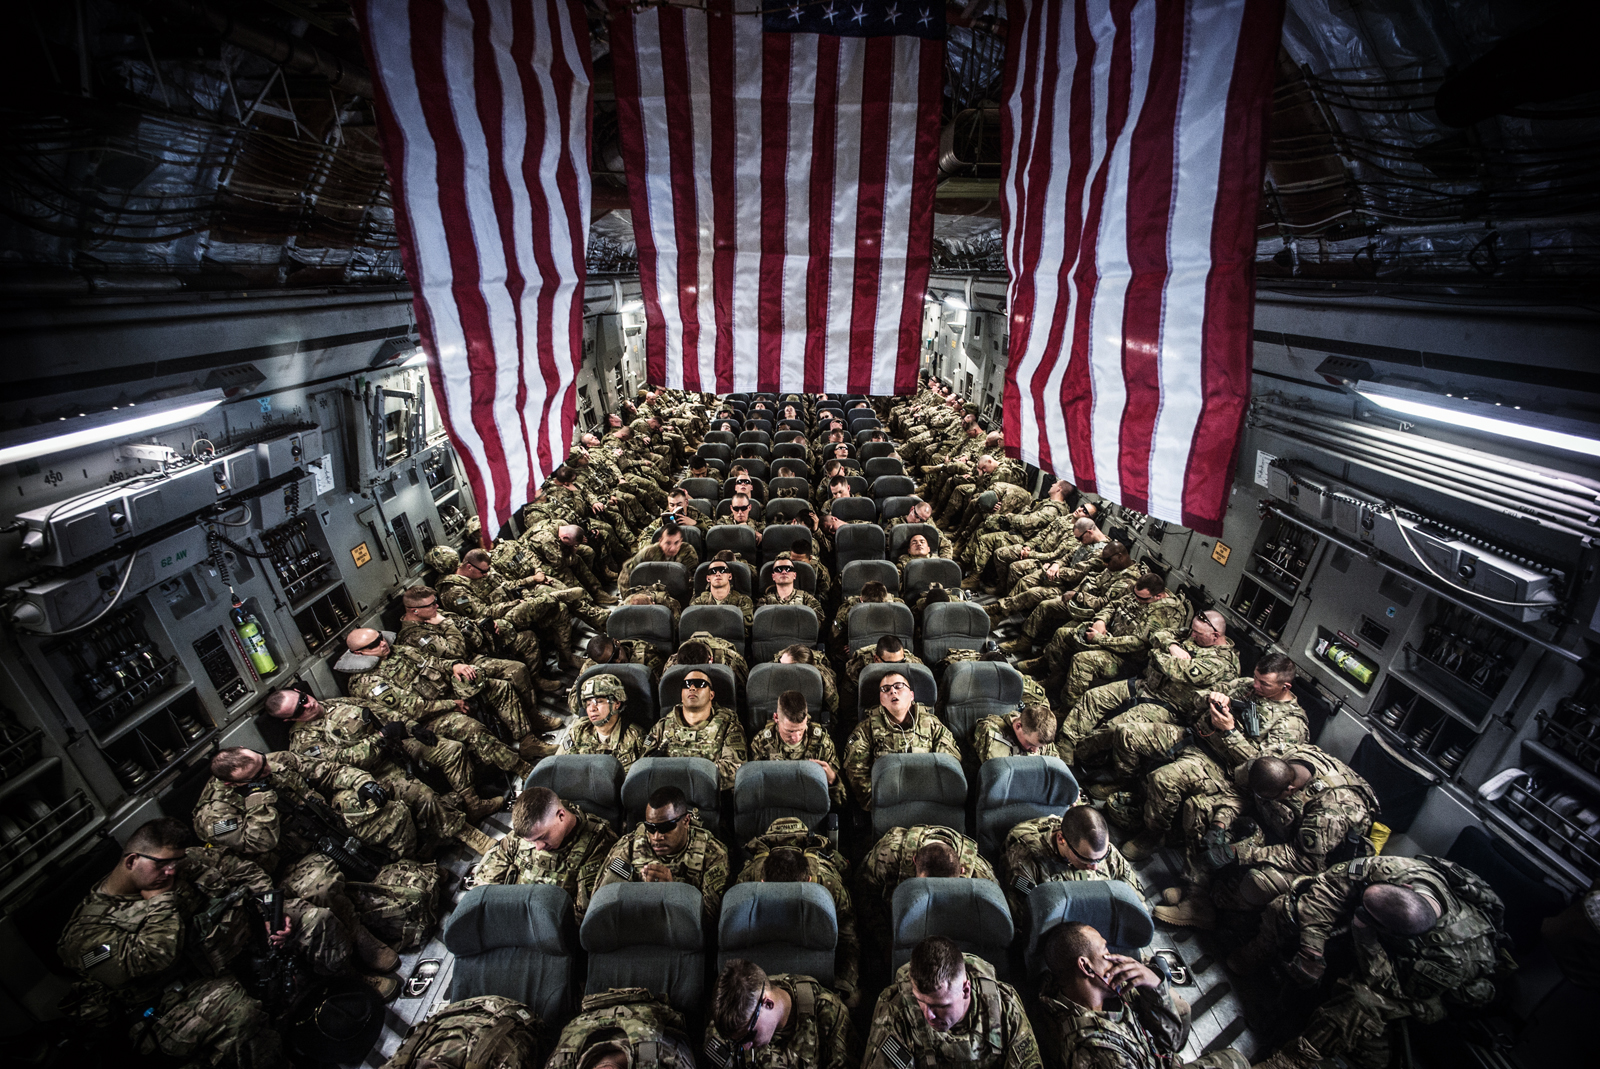 © Ryan Spencer Reed, Soldiers of the 1-506th Infantry Regiment, 4th Brigade Combat Team, 101st Airborne Division, (the battalion known as the Band of Brothers) are enroute on a C-17 from Transit Center at Manas Kyrgyzstan to Bagram Air Field. Taken: 2013.05.05